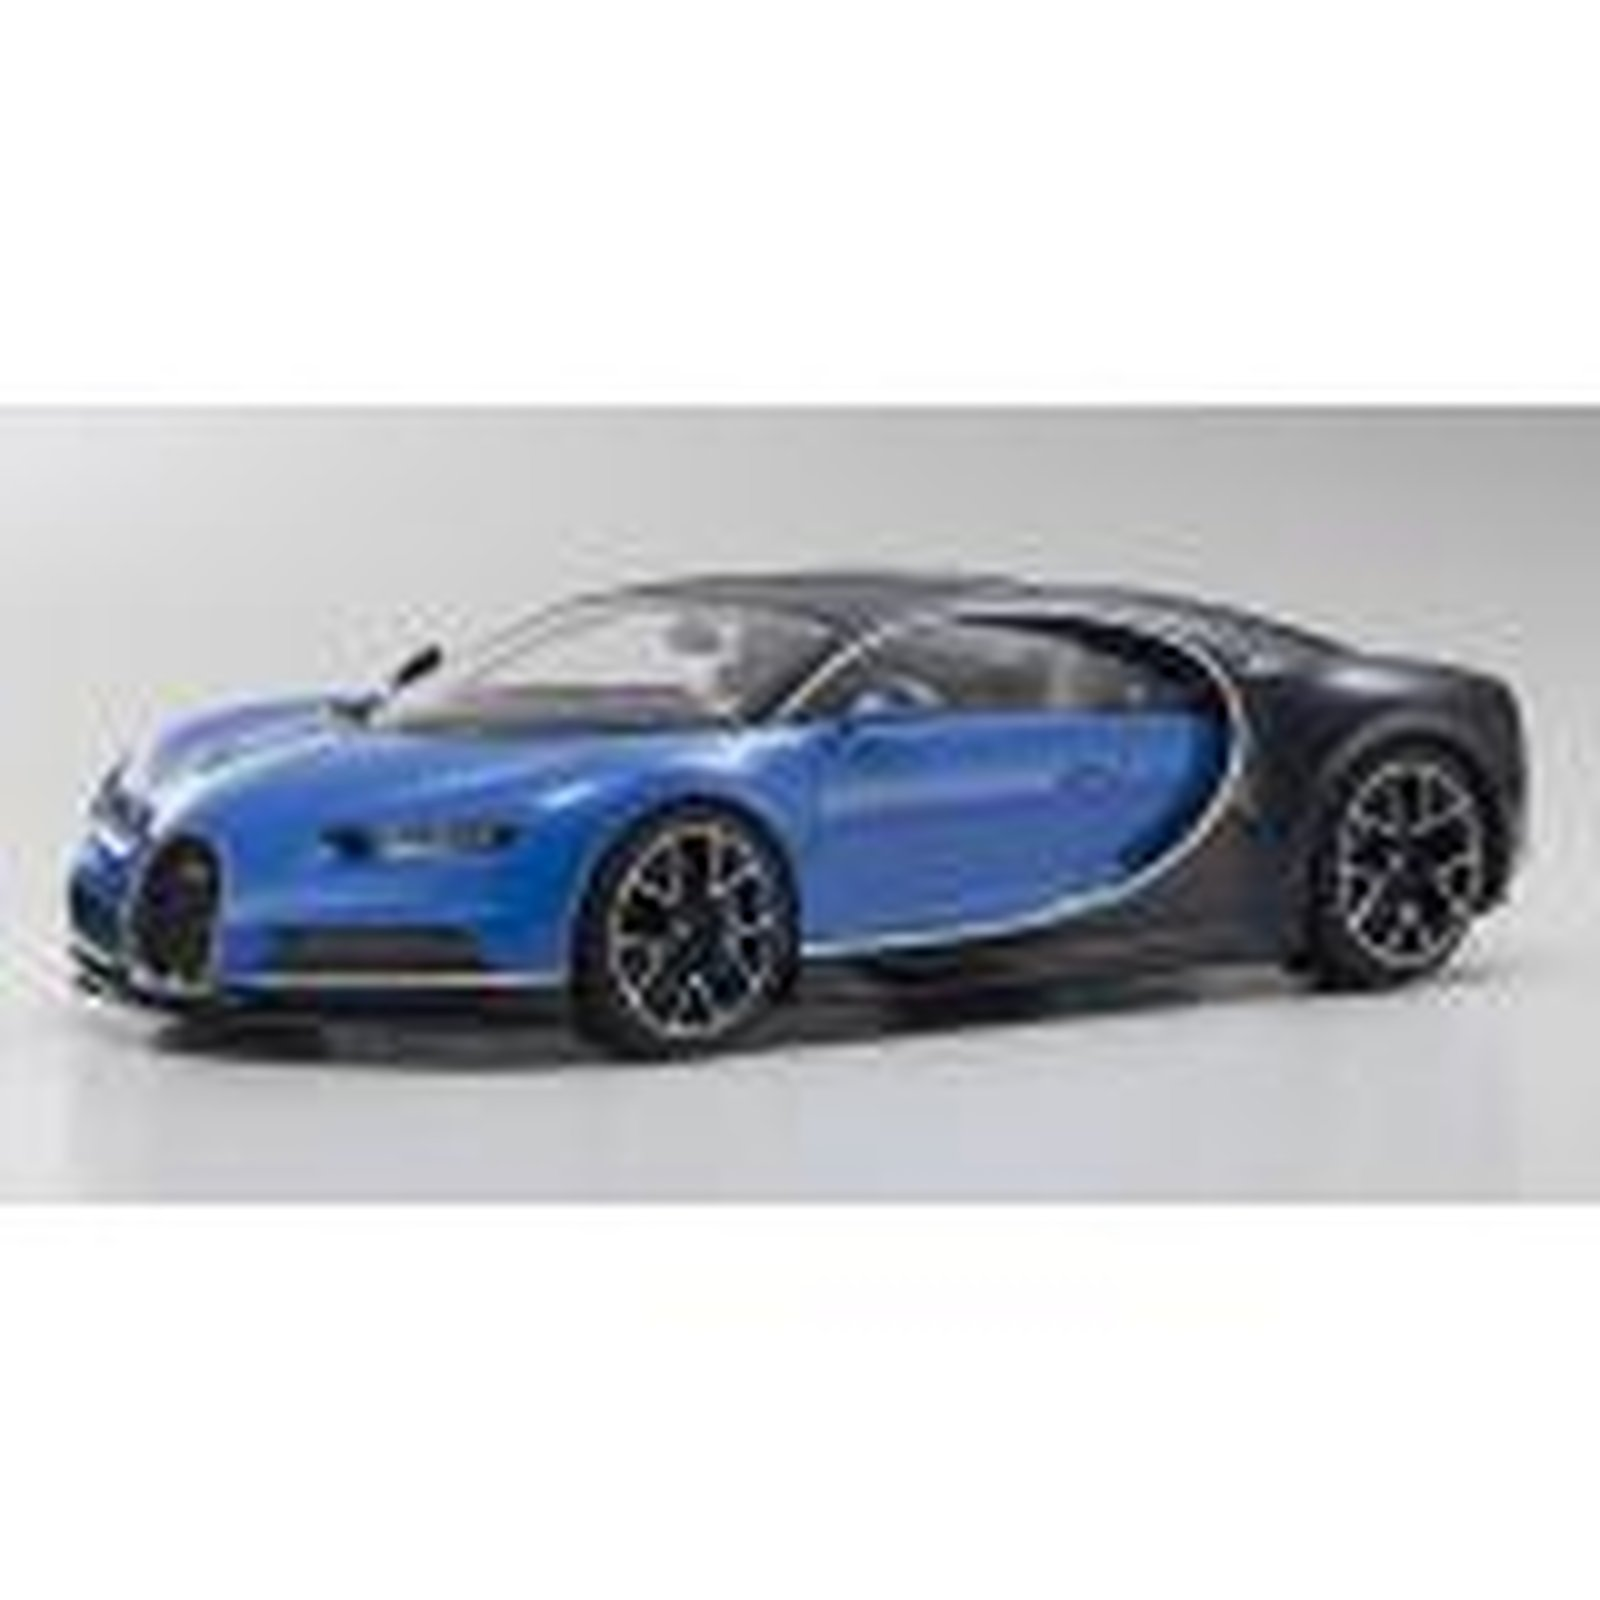 kyosho kyo9548bb bugatti chiron in french racing blue. Black Bedroom Furniture Sets. Home Design Ideas